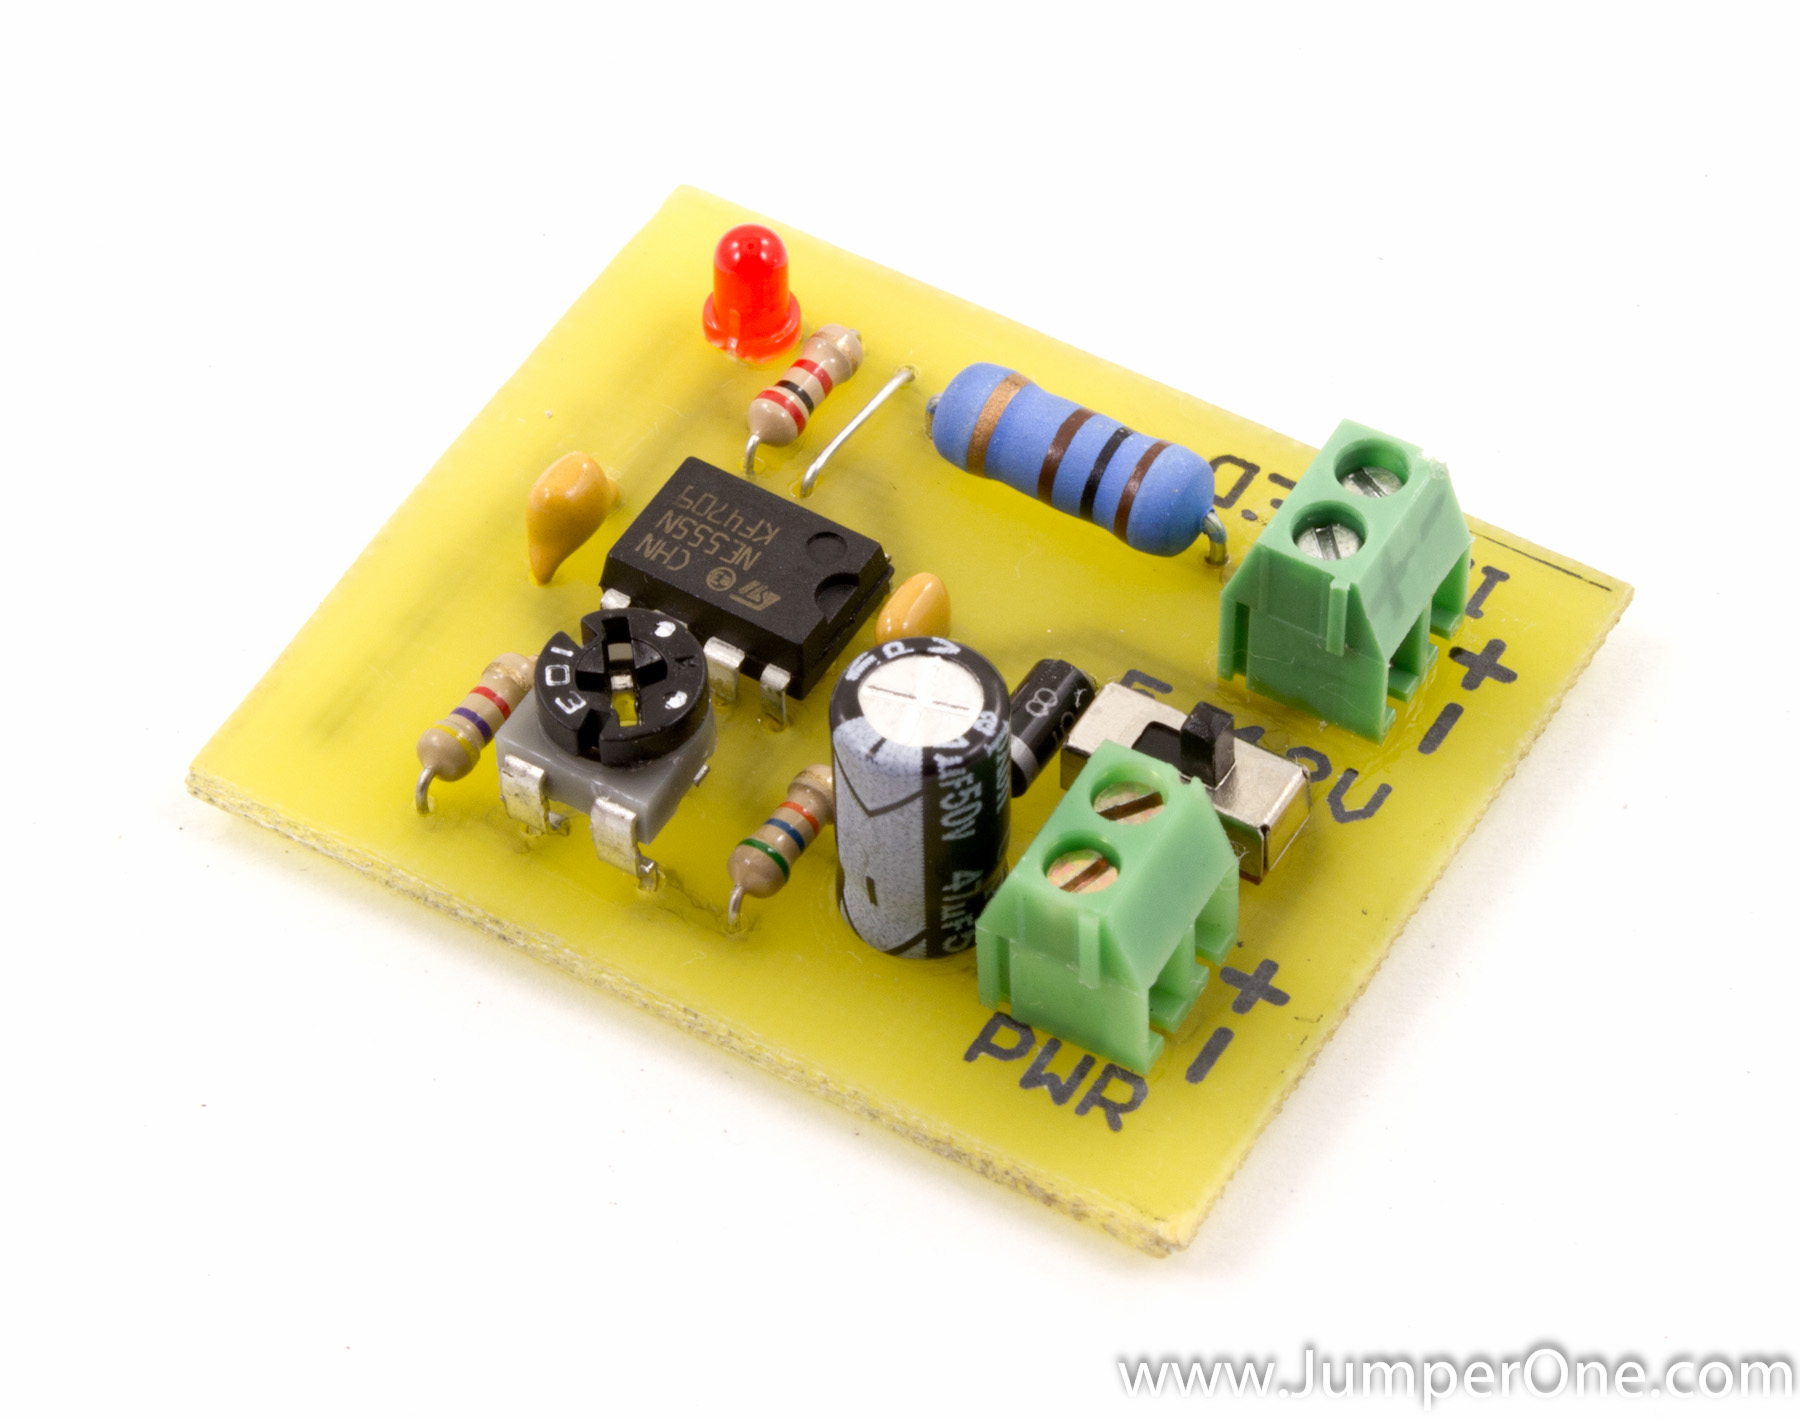 Break Beam Sensor Jumper One As Well Infrared Detector Circuit On Schematic Its Just Ne555 Timer